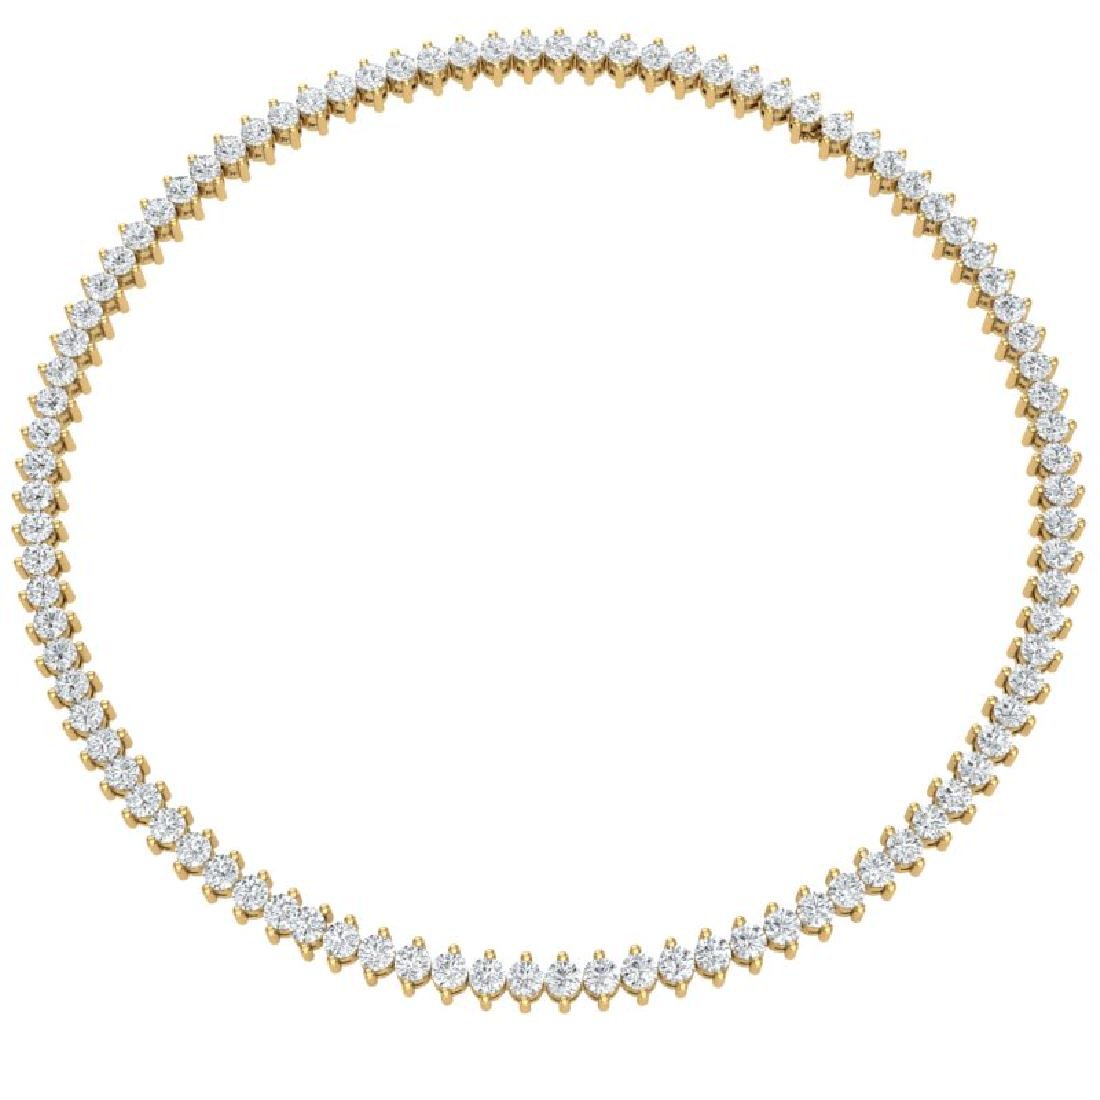 20 CTW Certified VS/SI Diamond Necklace 18K Yellow Gold - 3